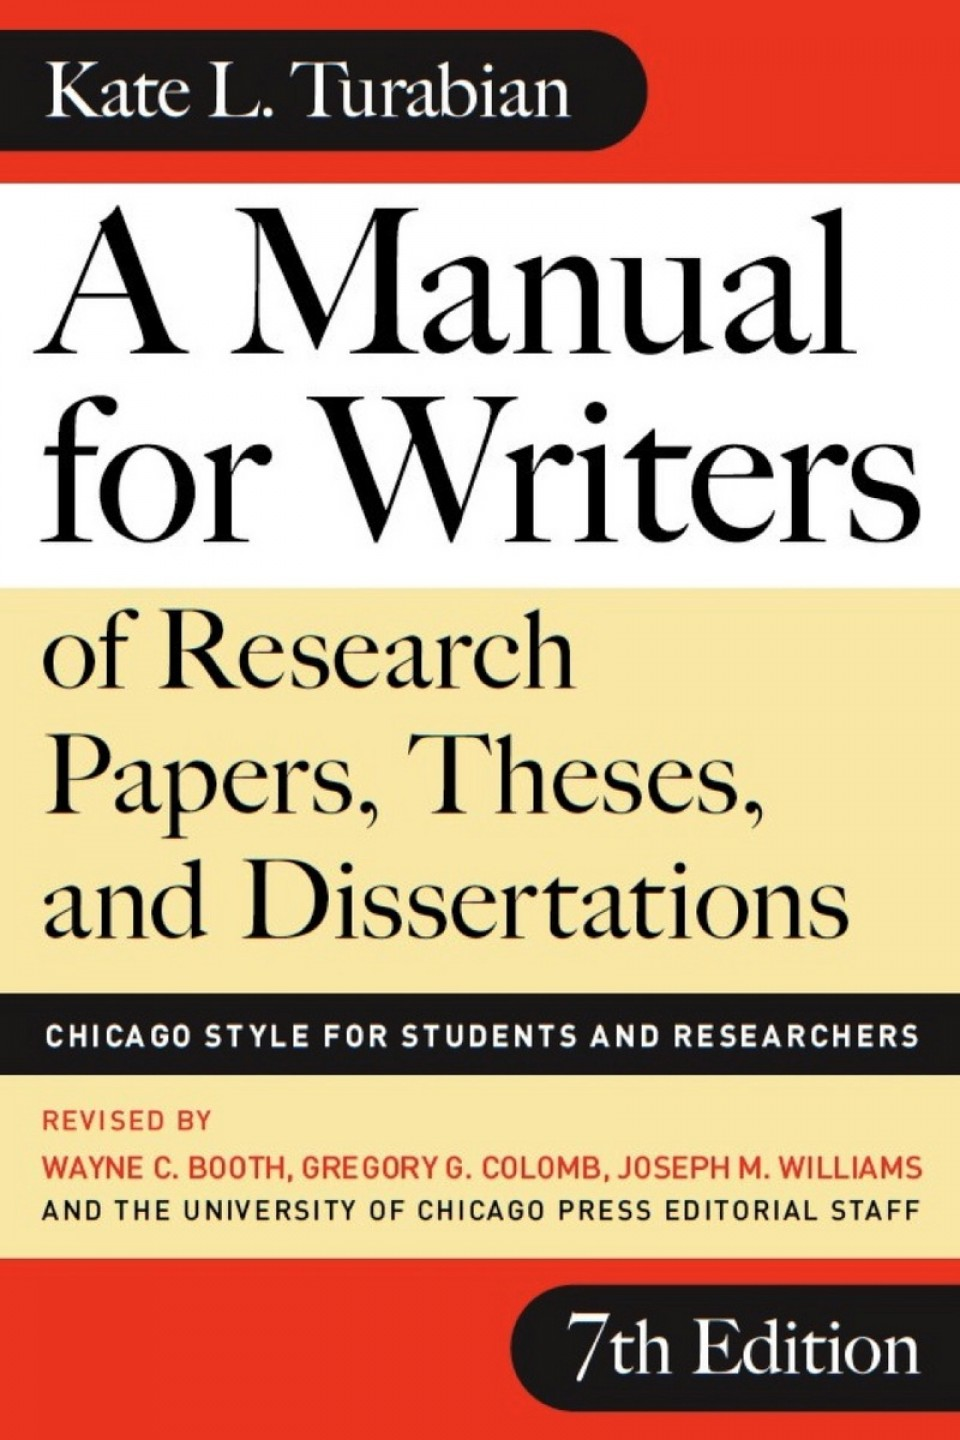 008 Manual For Writers Of Researchs Theses And Dissertations Frontcover Magnificent Research Papers A Amazon 9th Edition Pdf 8th 13 960